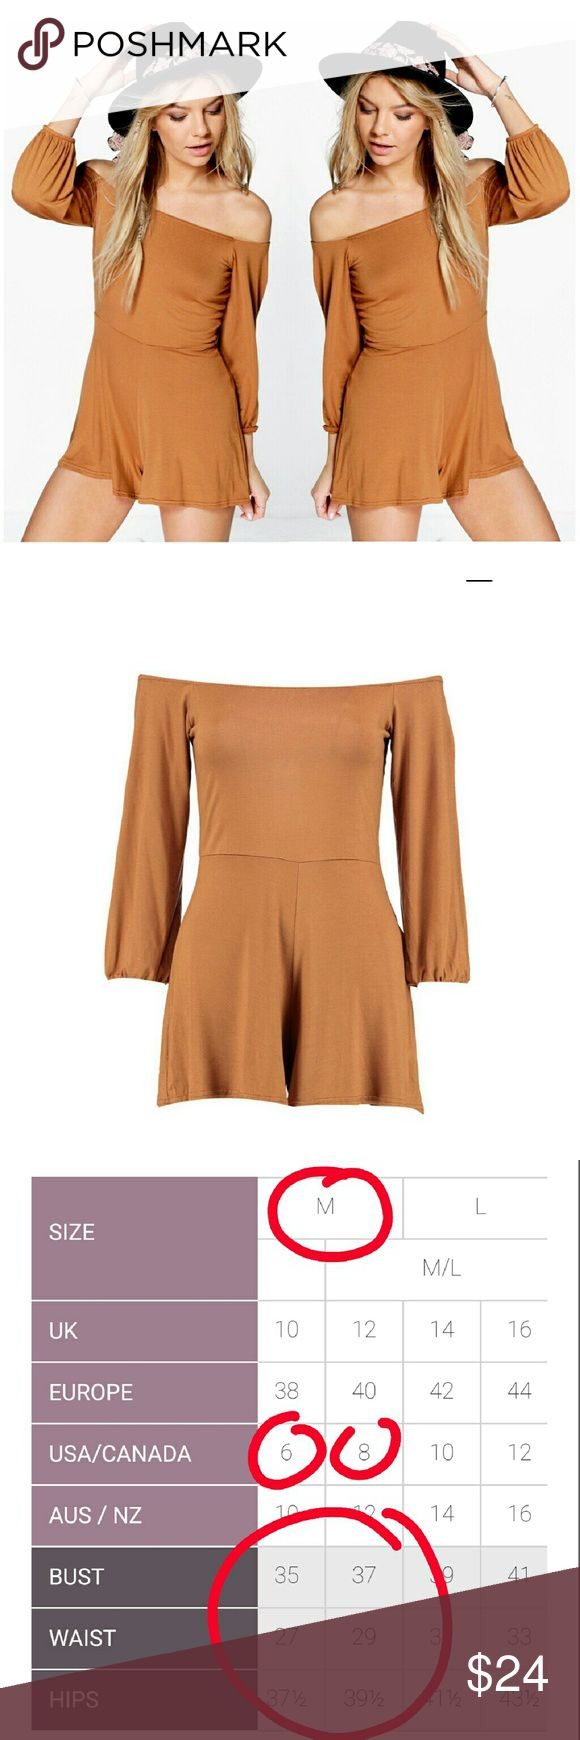 Off The Shoulder Jersey Playsuit in Tan Off The Shoulder Jersey Festival Playsuit in Tan.  Size Medium available in both size 6 and 8. Please comment below on the specific size you'd like. Brand new with tags.   Material is 95% Viscose, 5% Elastane. Boohoo Shorts